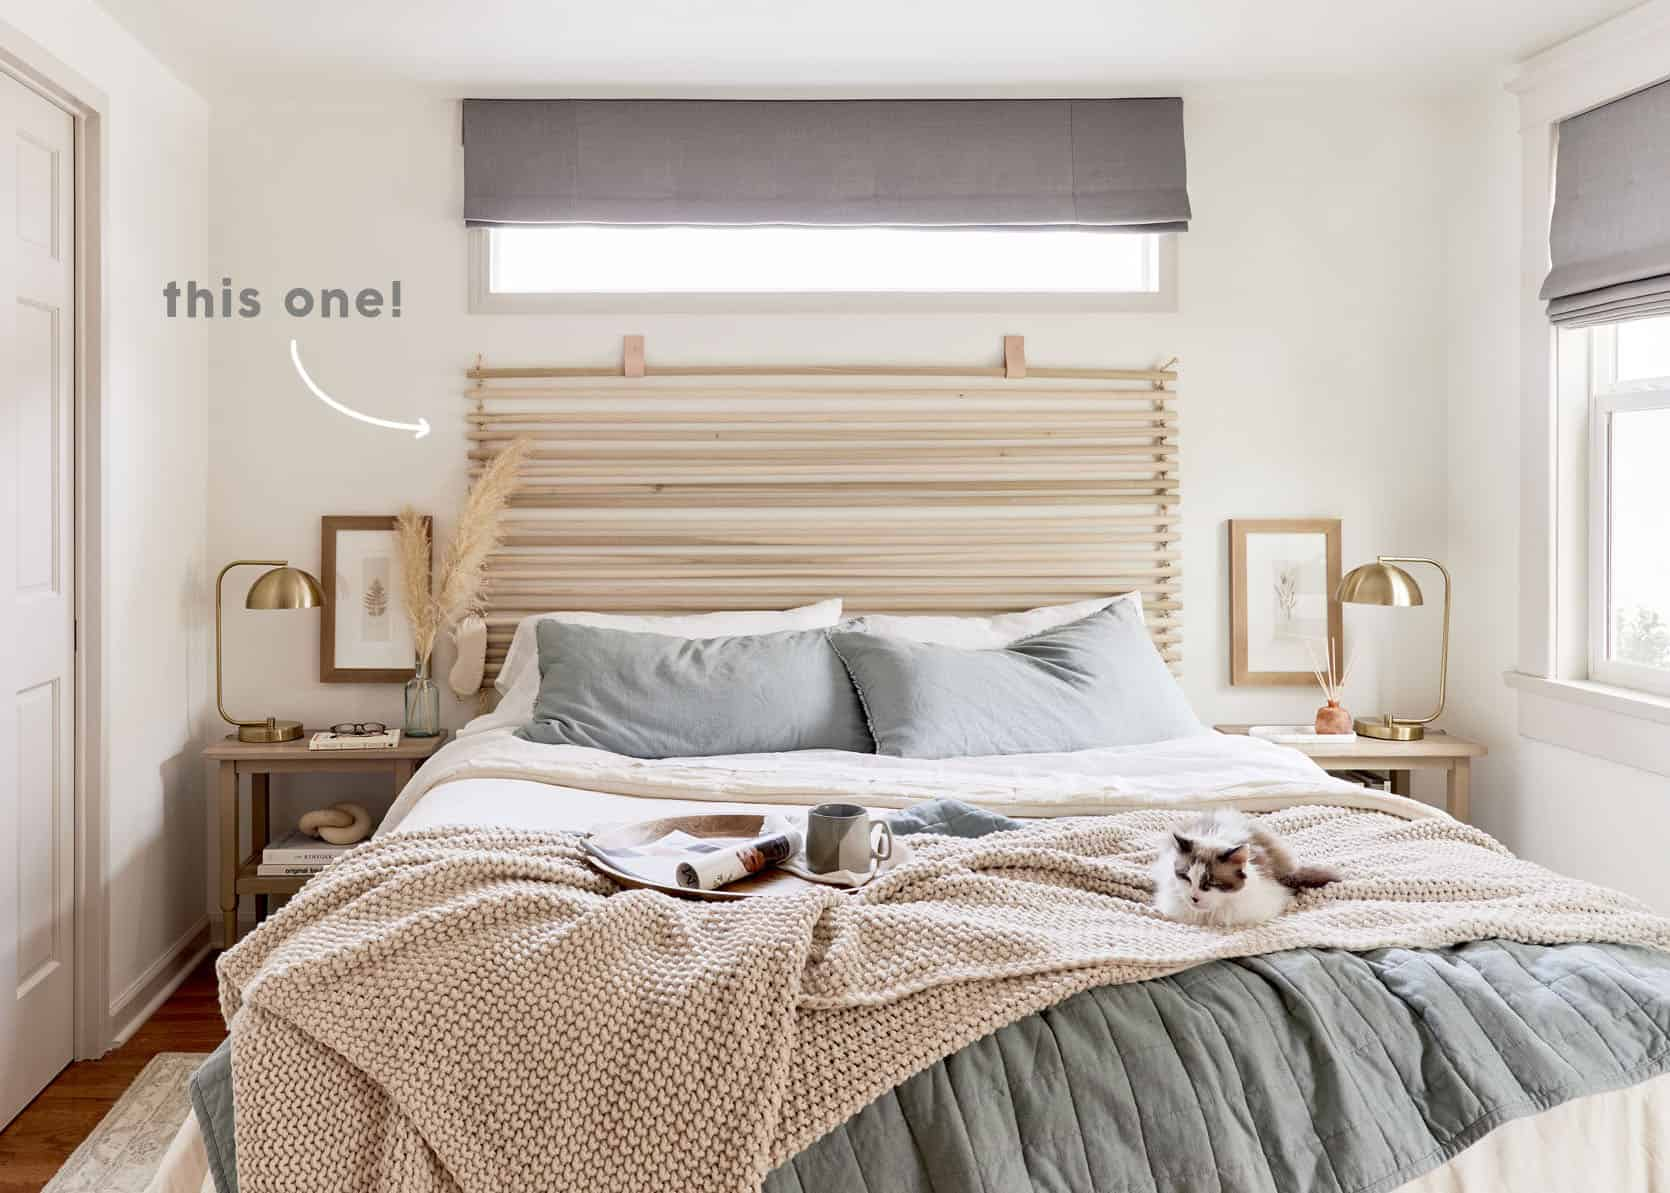 The Diy Headboard You All Wanted To Know About Emily Henderson